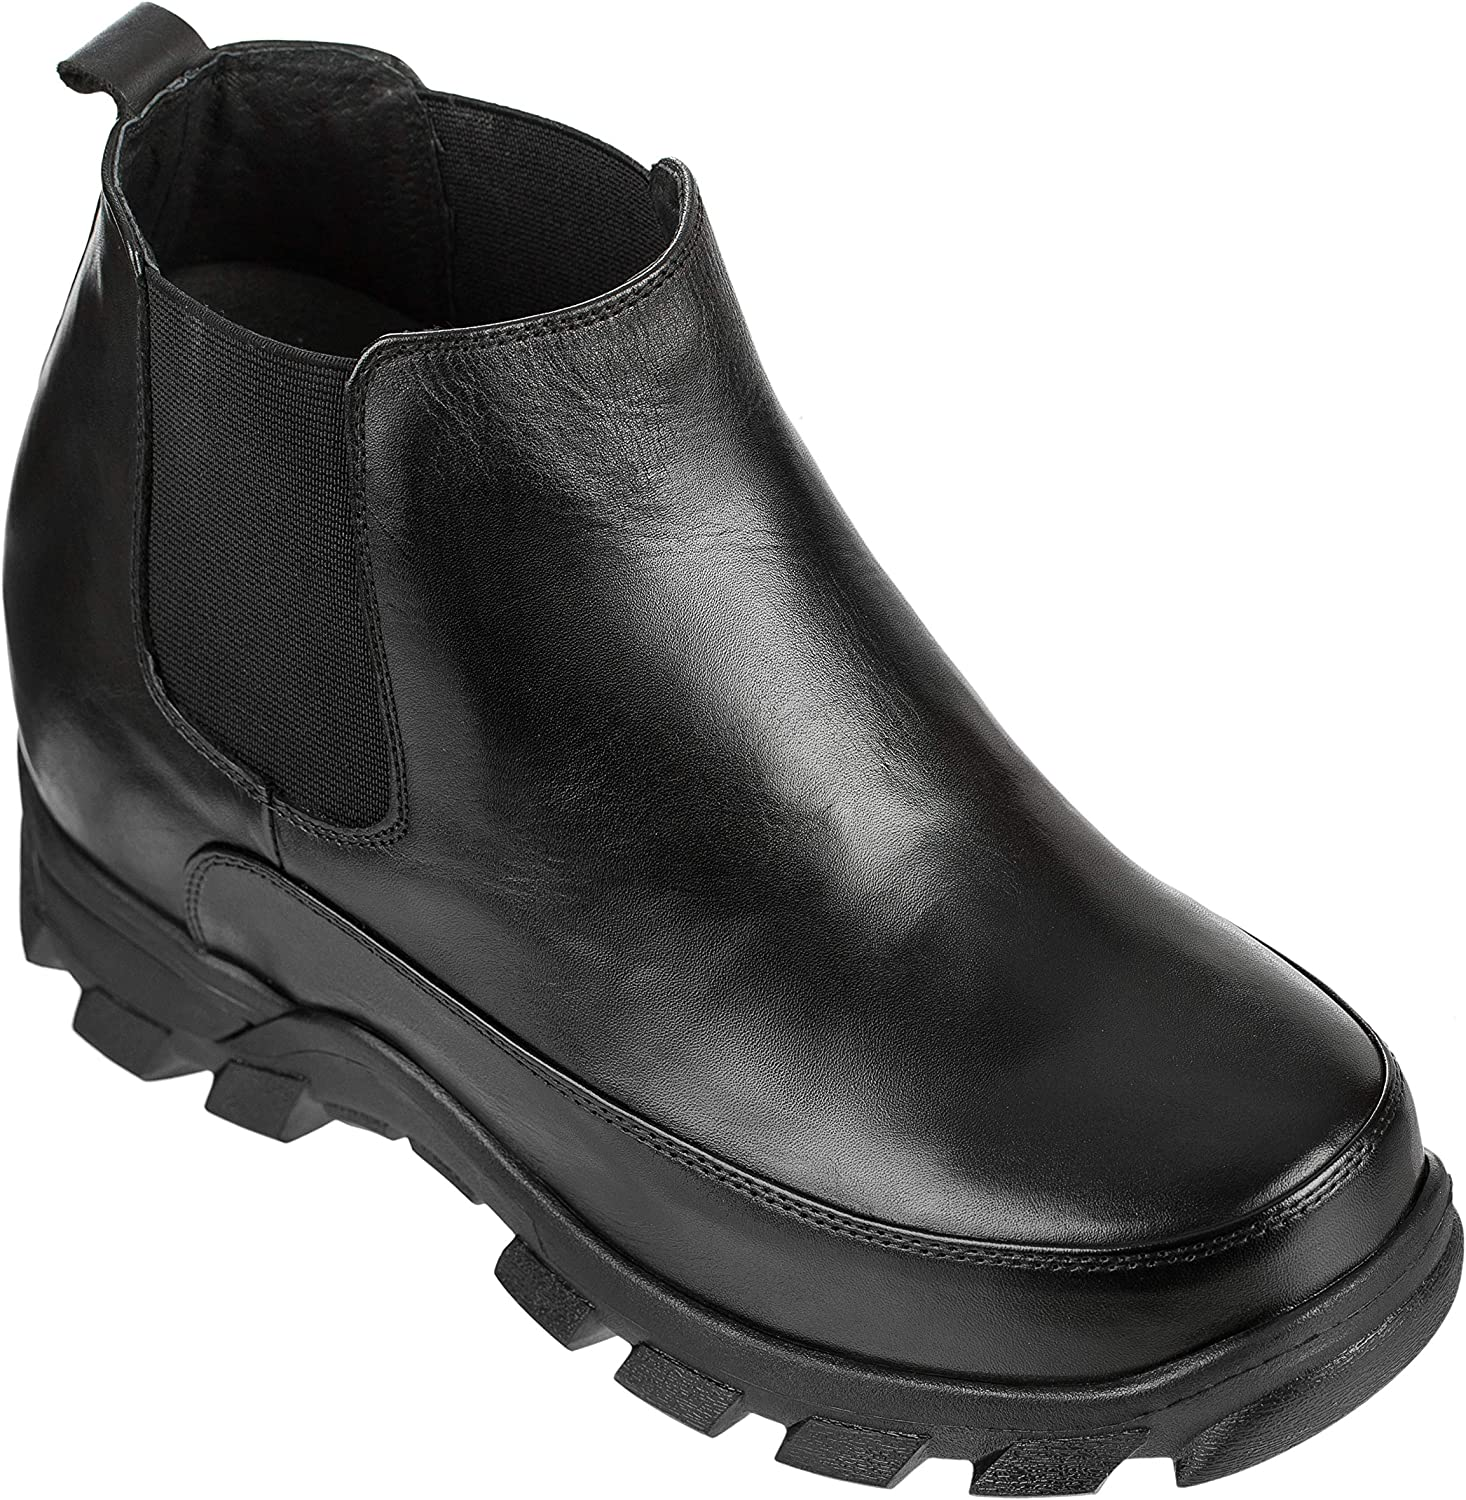 CALDEN Men's Invisible Height Increasing Elevator shoes - Black Leather Slip-on Hiking-Style Ankle Boots - 4.9 Inches Taller - K332011